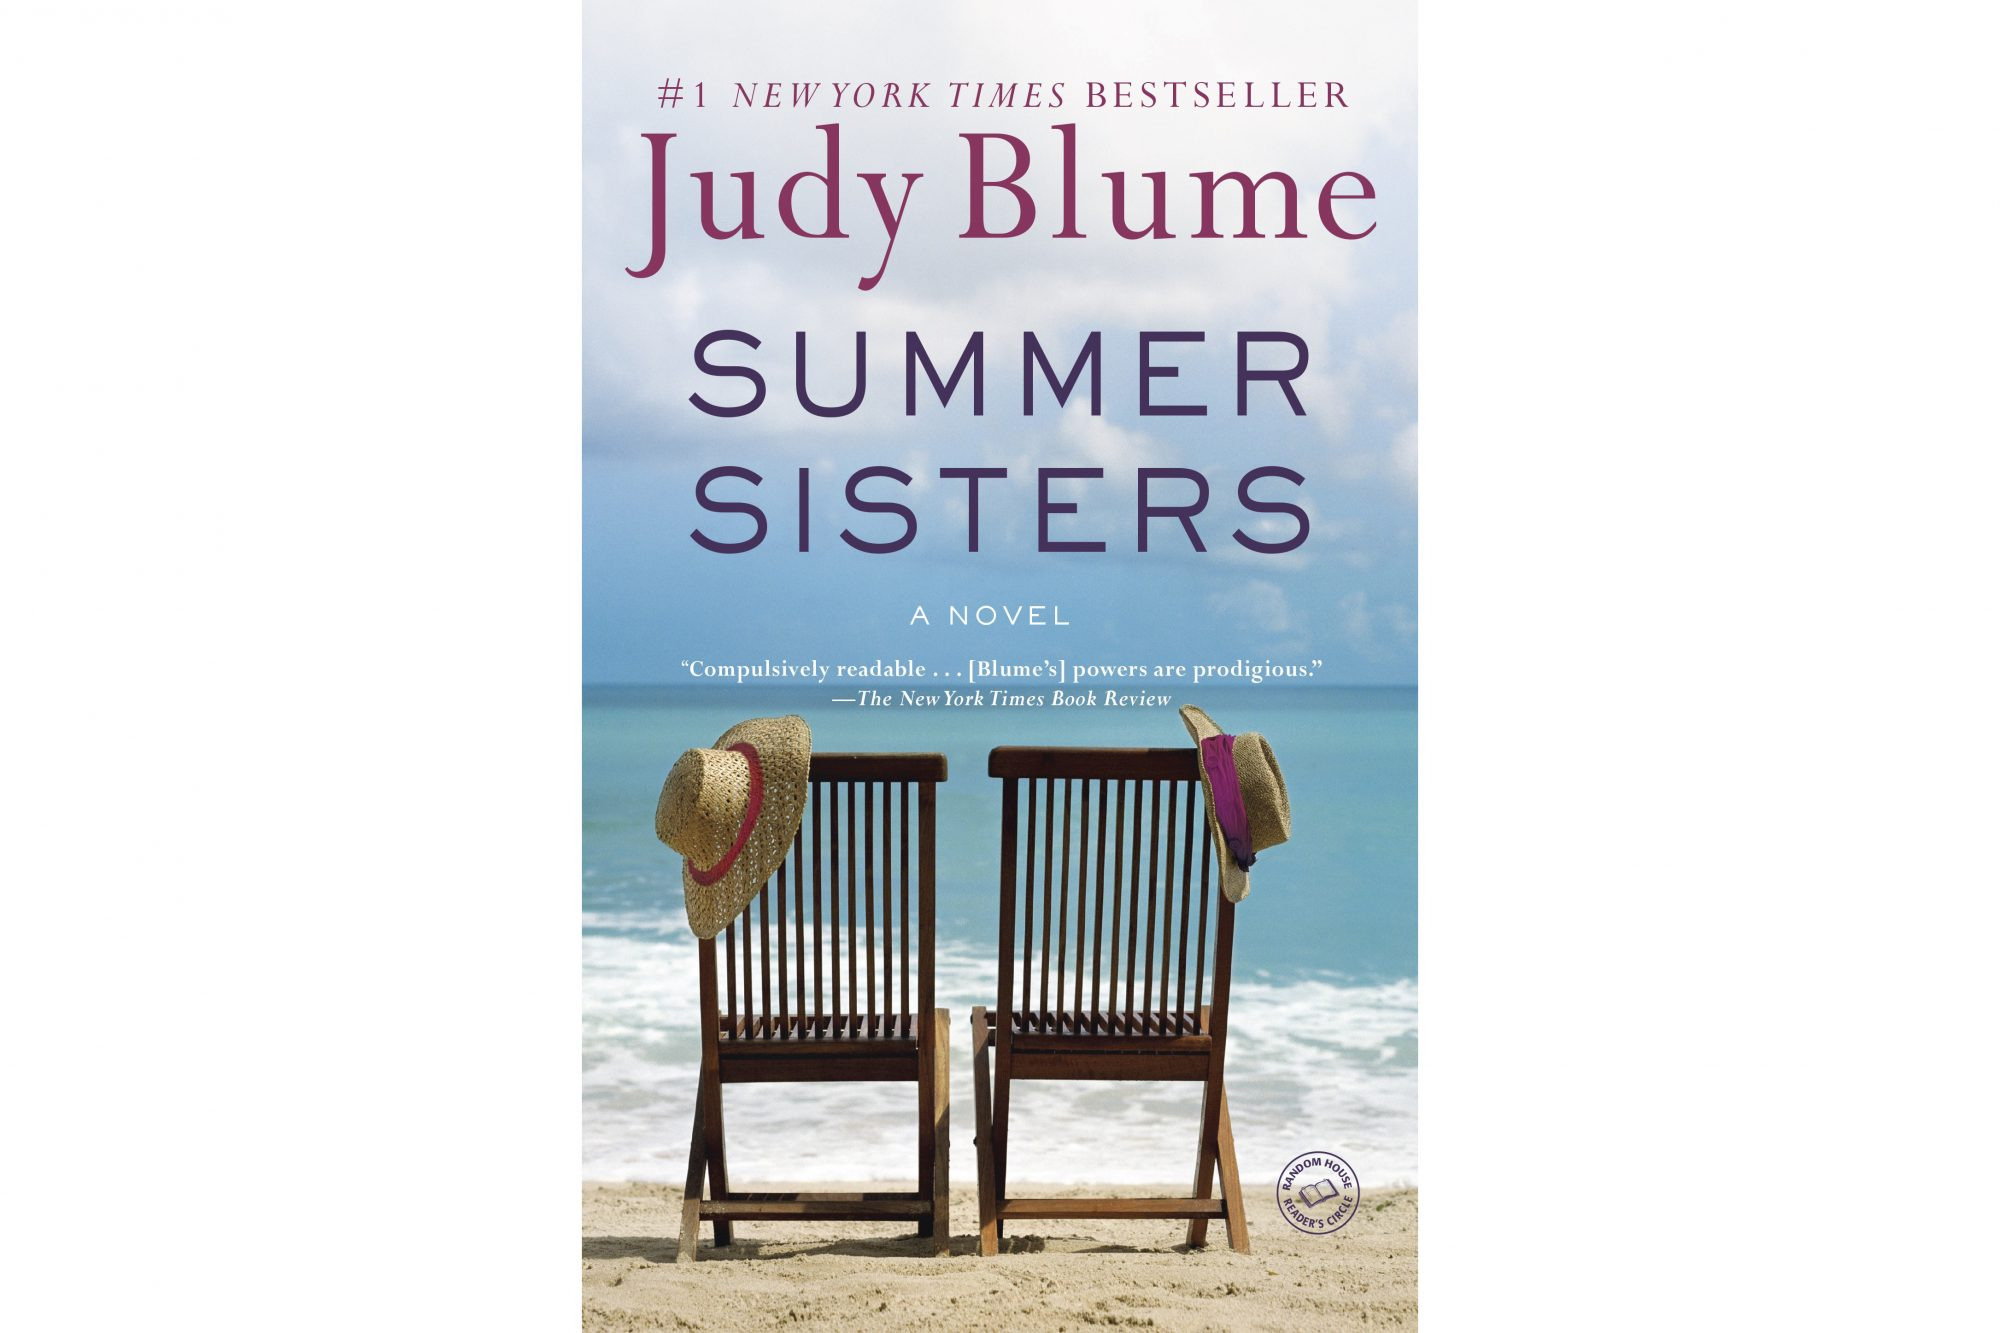 Summer Sisters, by Judy Blume